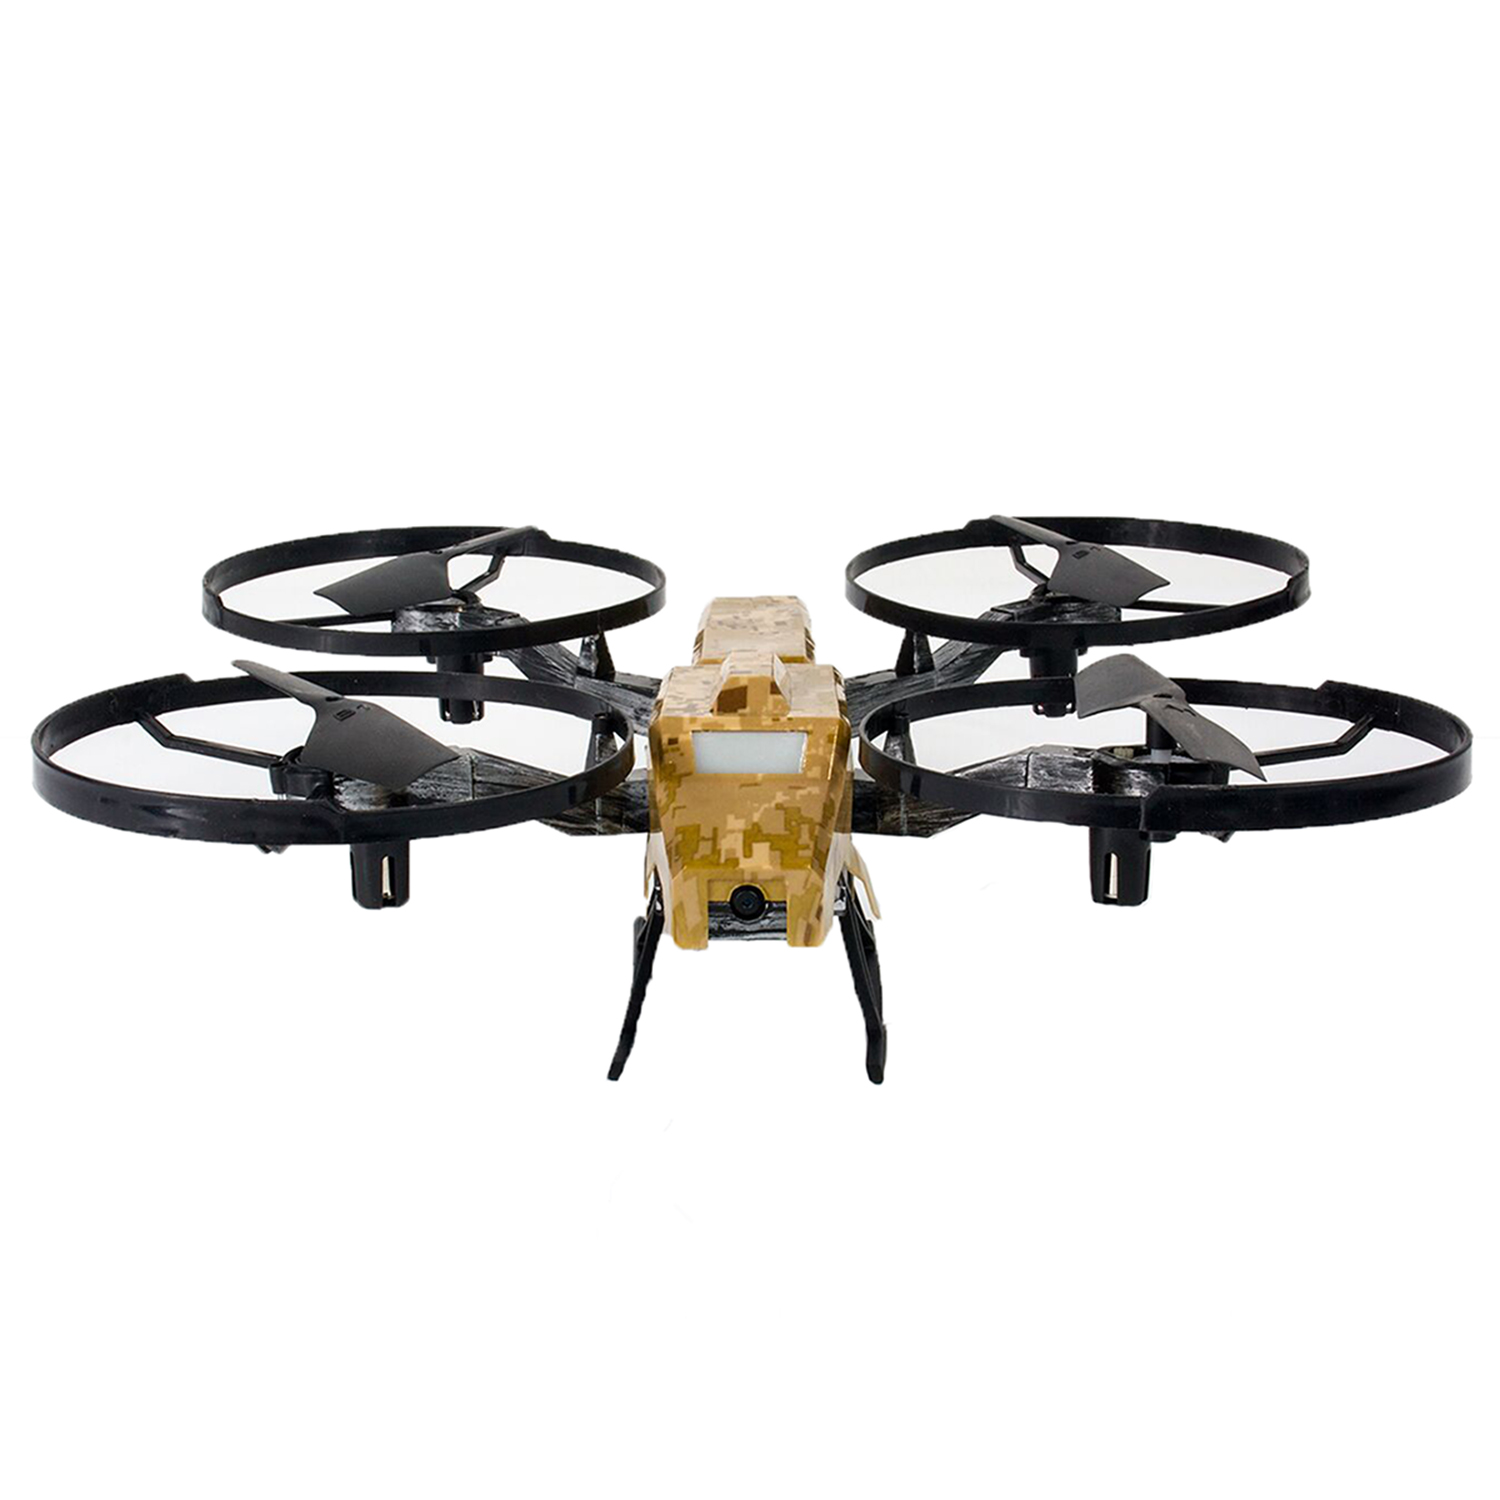 Call of Duty Dragon Fly-WiFi RC Drone w/ HD Video Camera ...